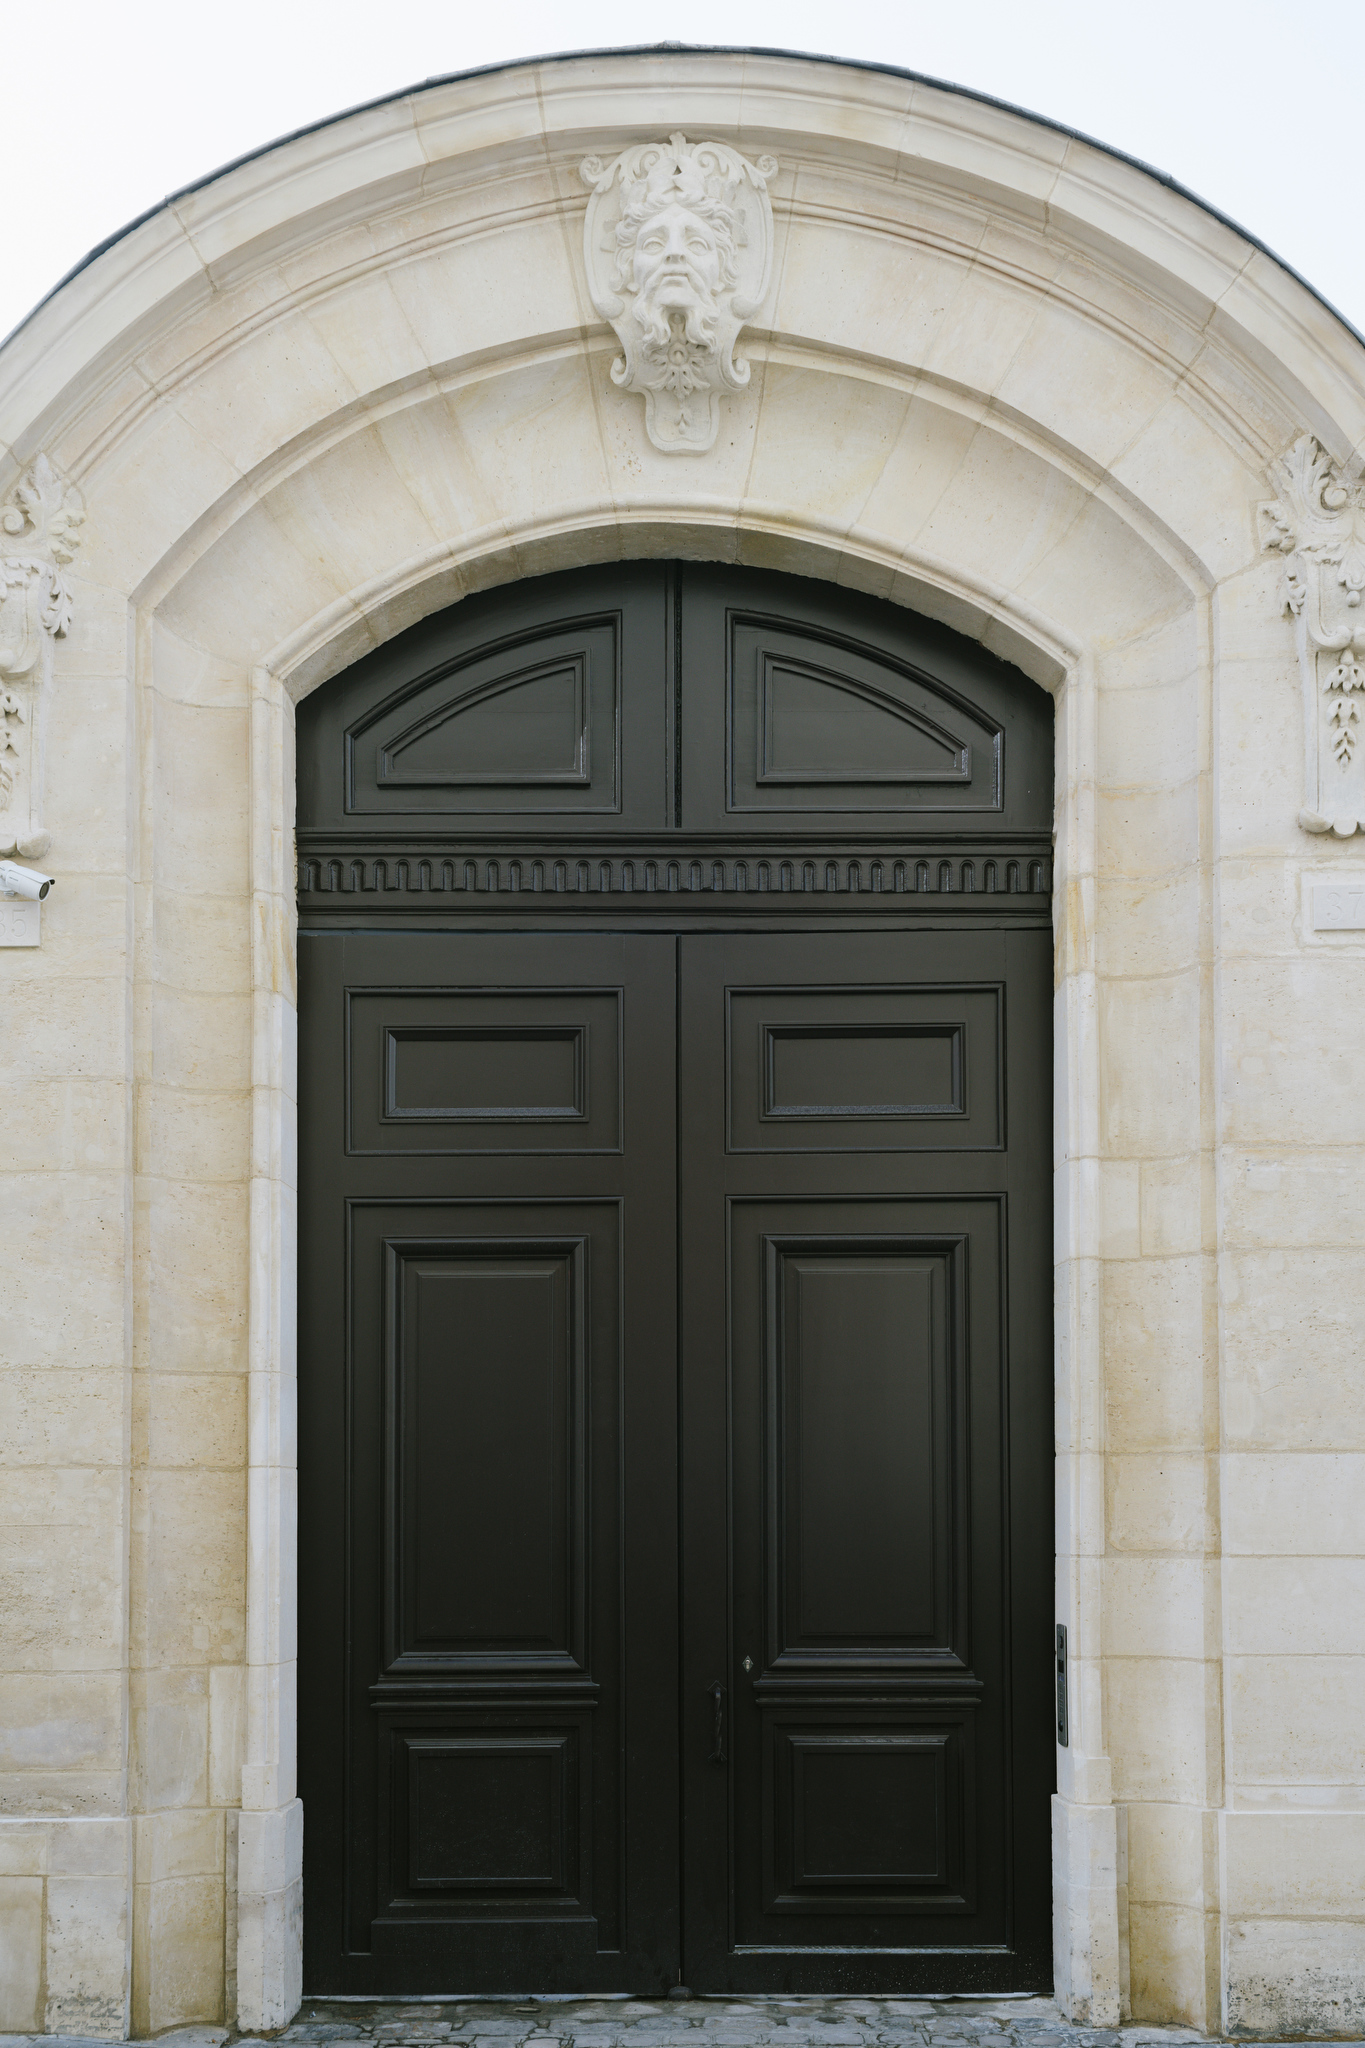 The grand entrance at 35-37 Rue des Francs-Bourgeois